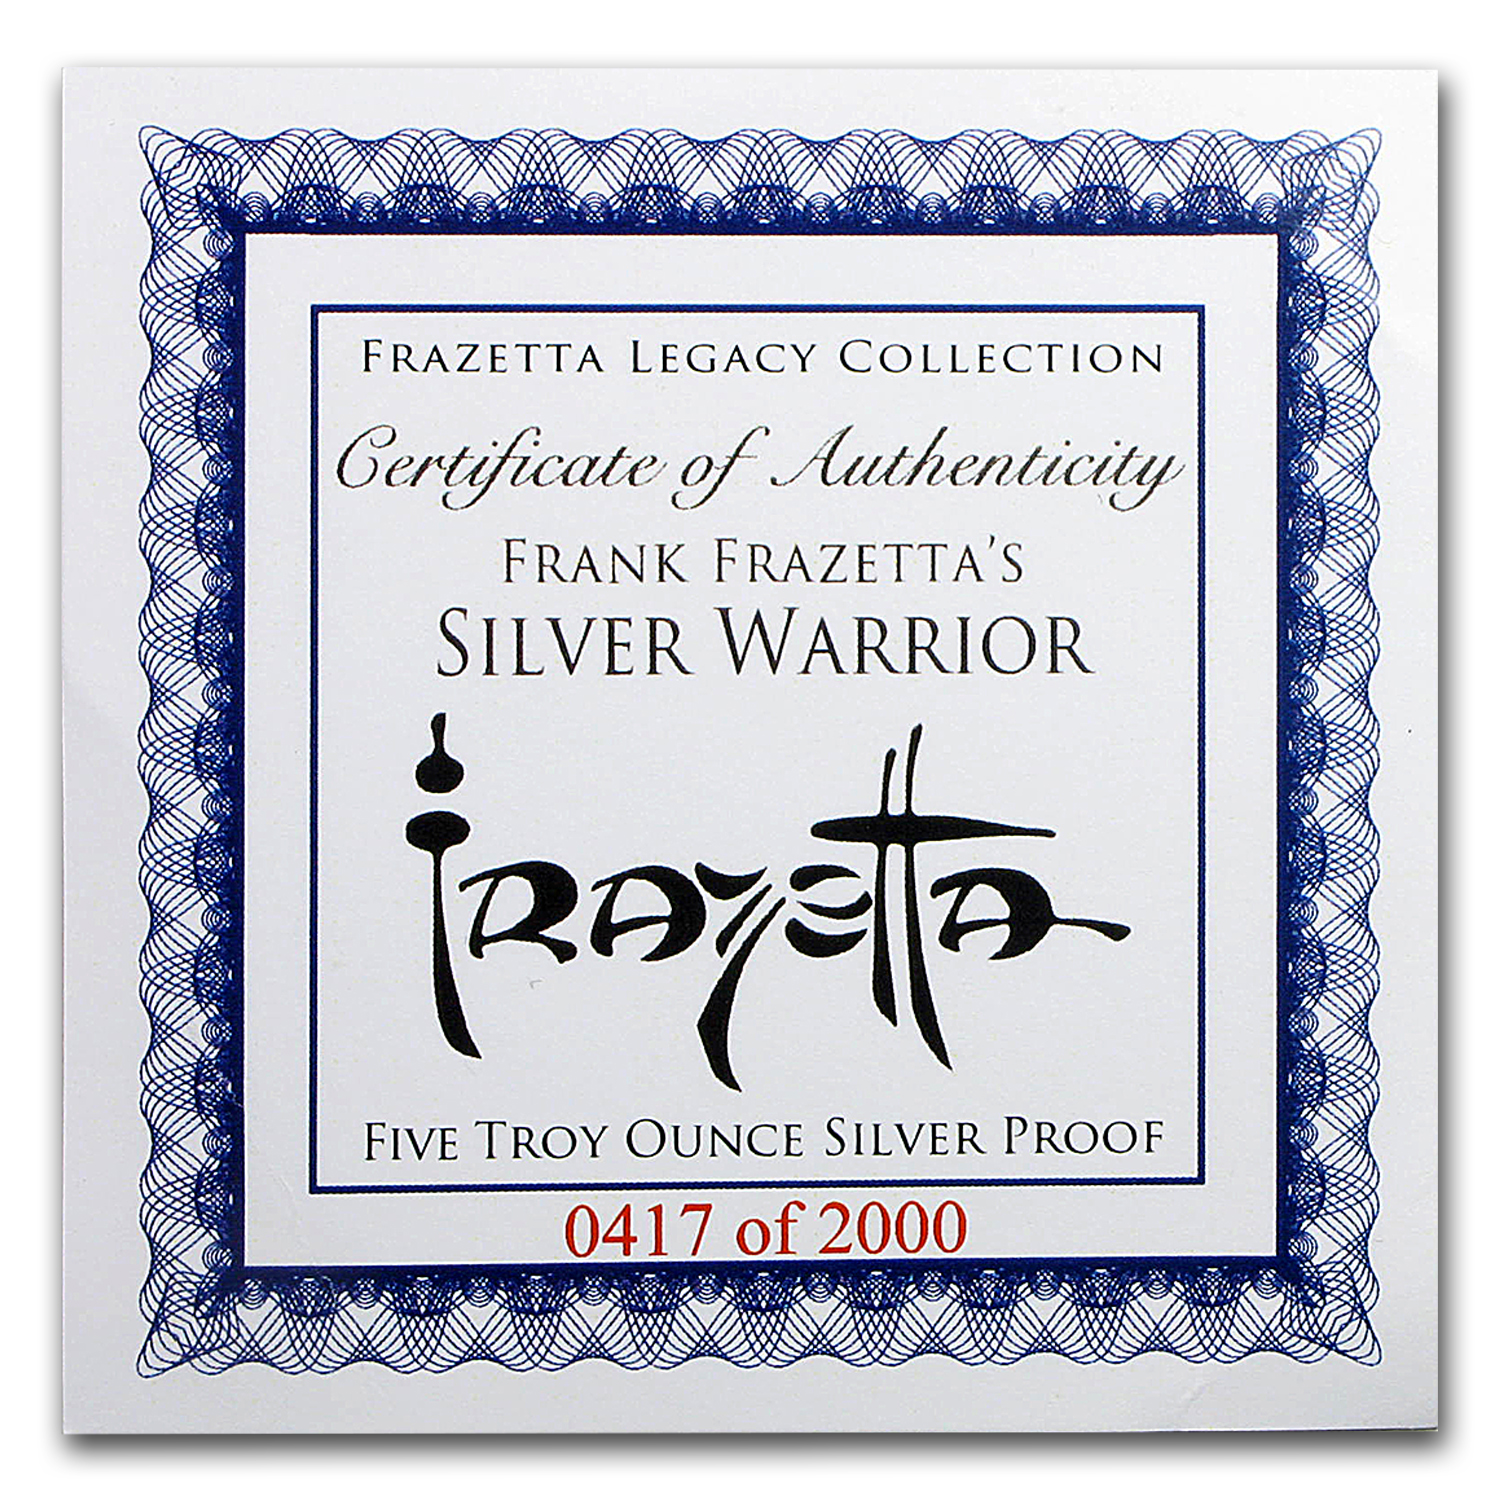 5 oz Silver Proof Round - Frank Frazetta (Silver Warrior)